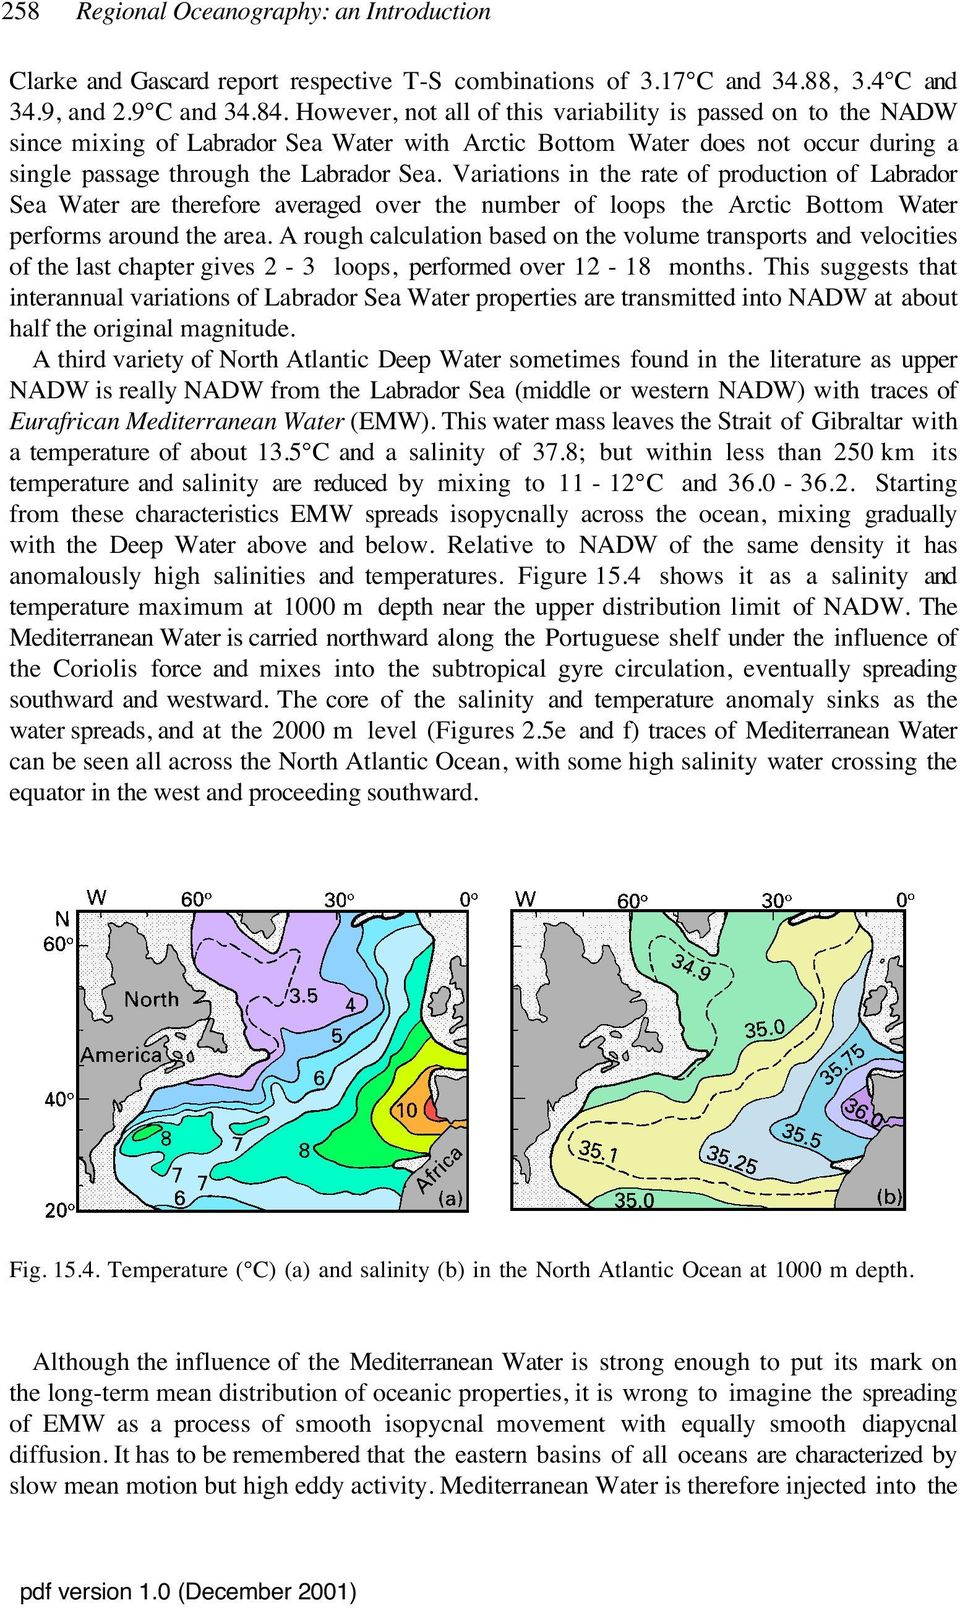 Variations in the rate of production of Labrador Sea Water are therefore averaged over the number of loops the Arctic Bottom Water performs around the area.